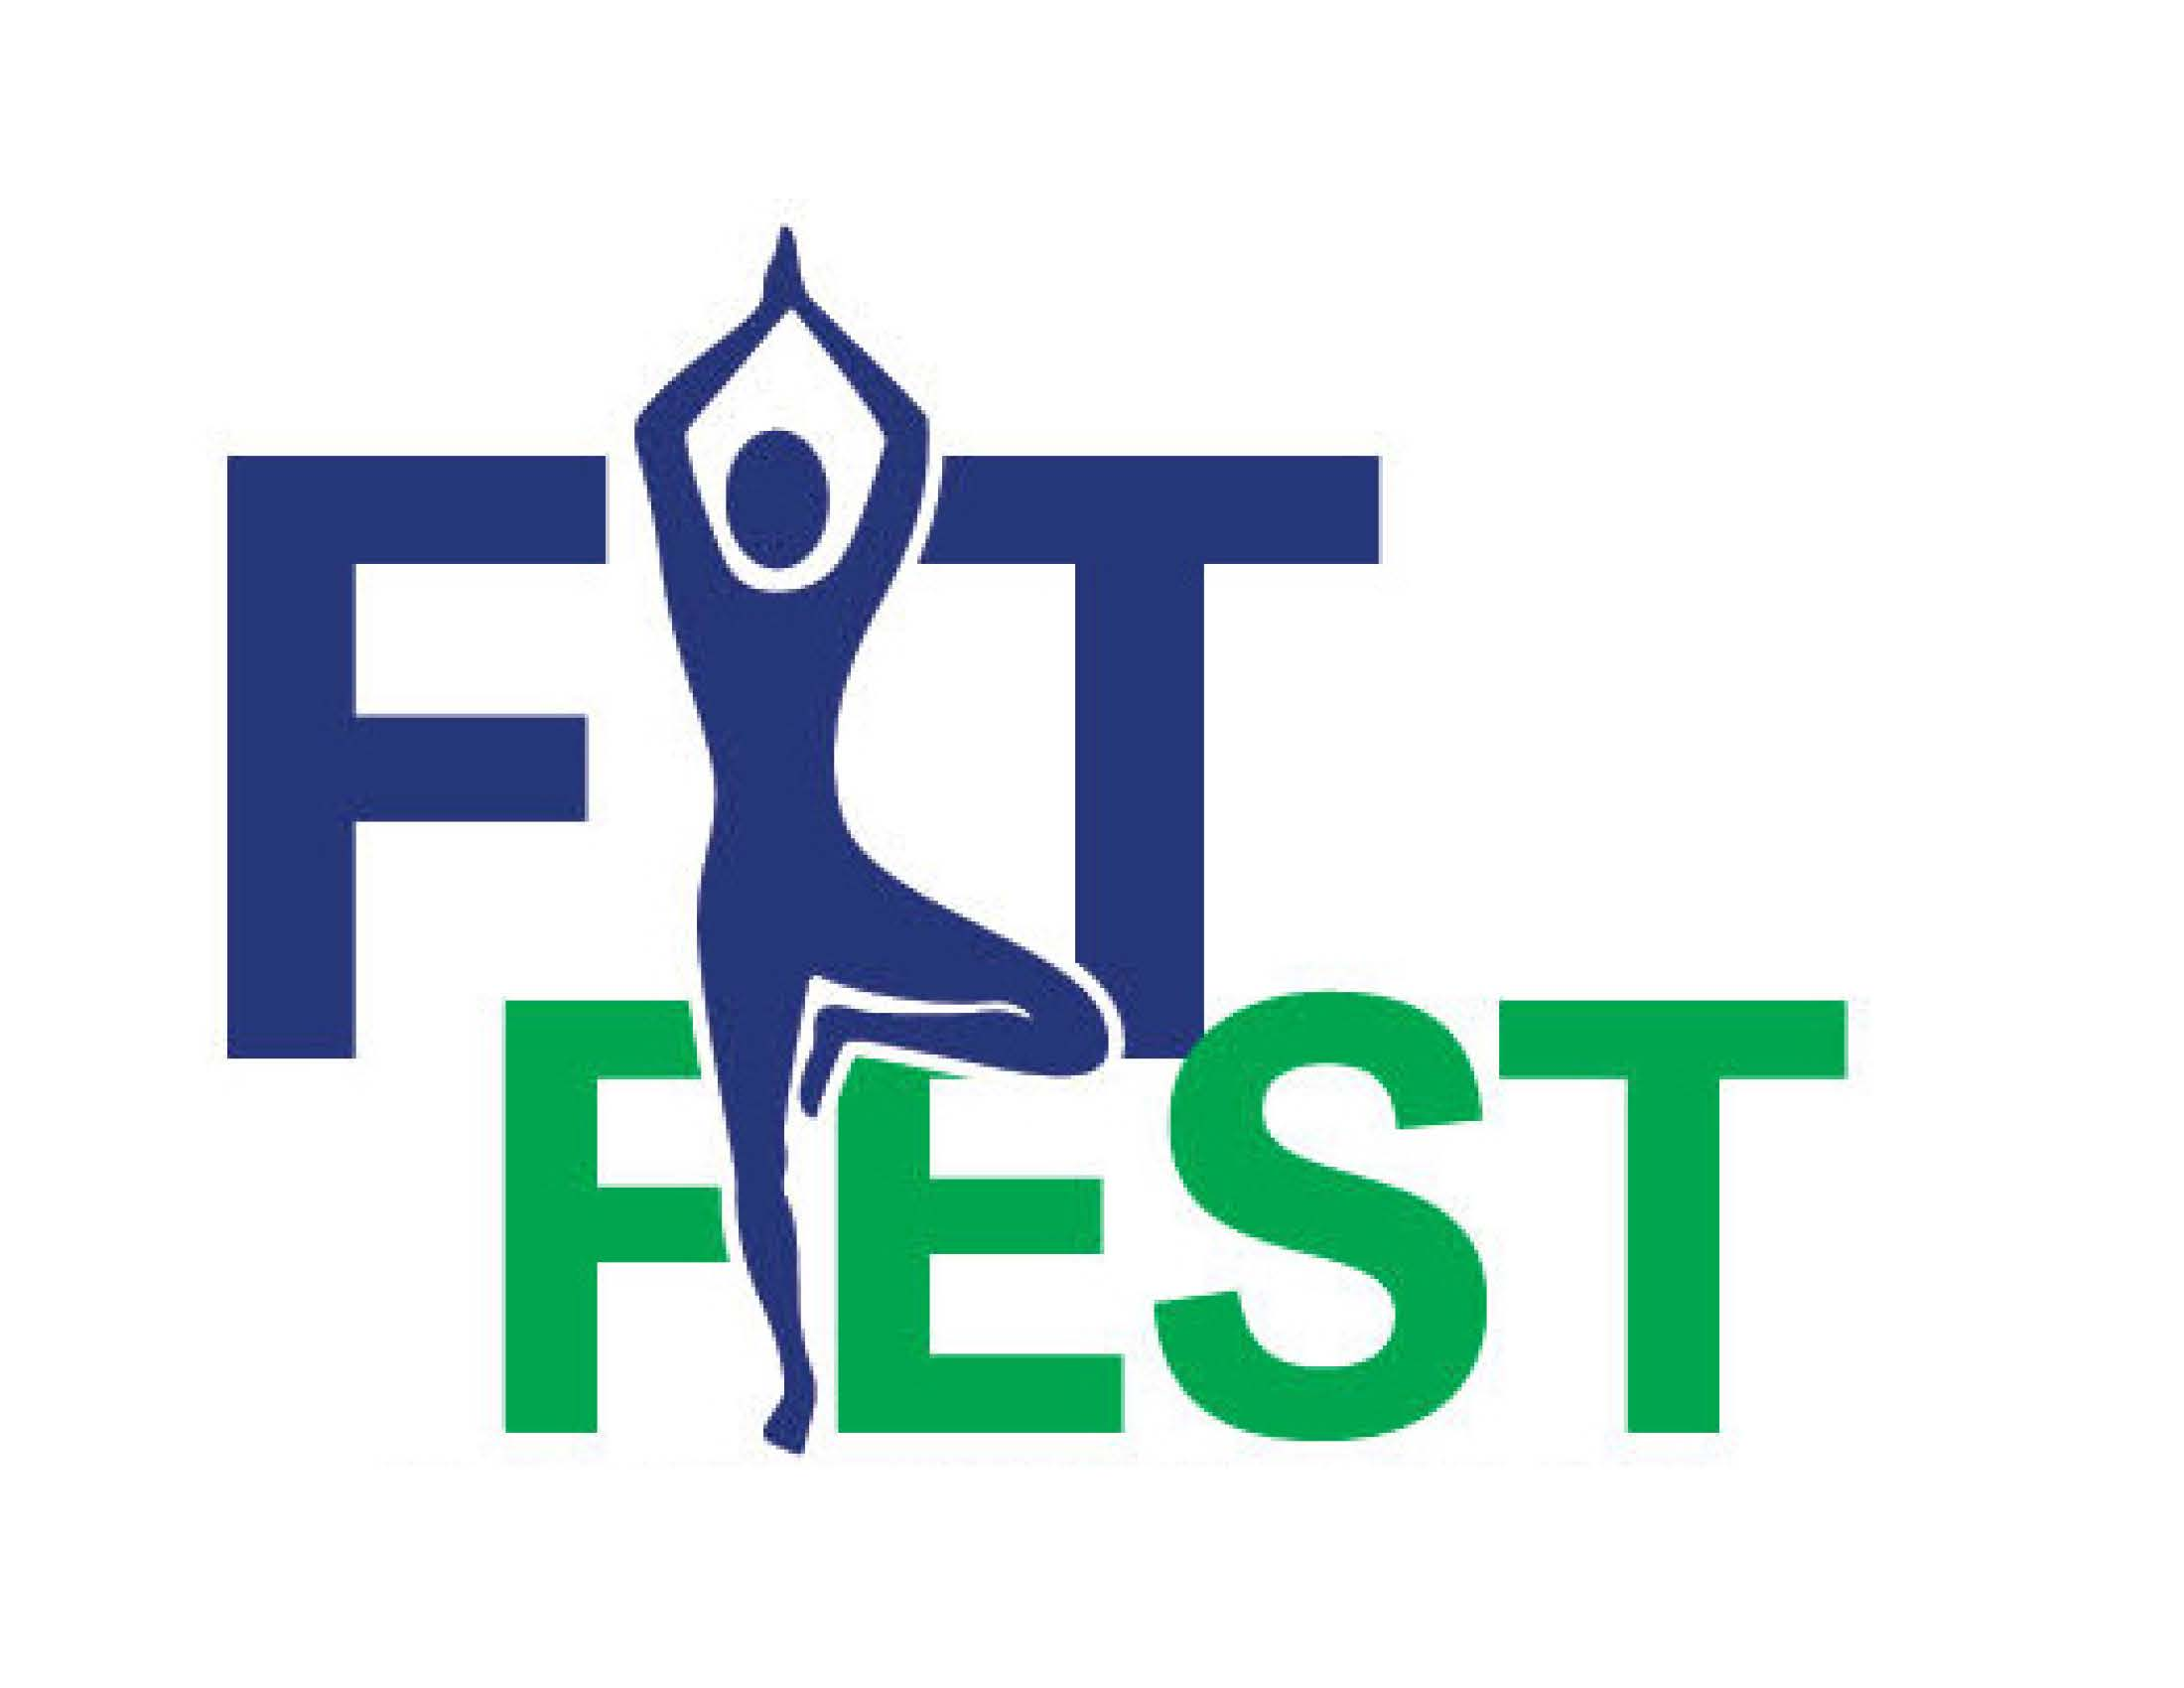 2nd annual Fit Fest at Moncus Park Oct 7